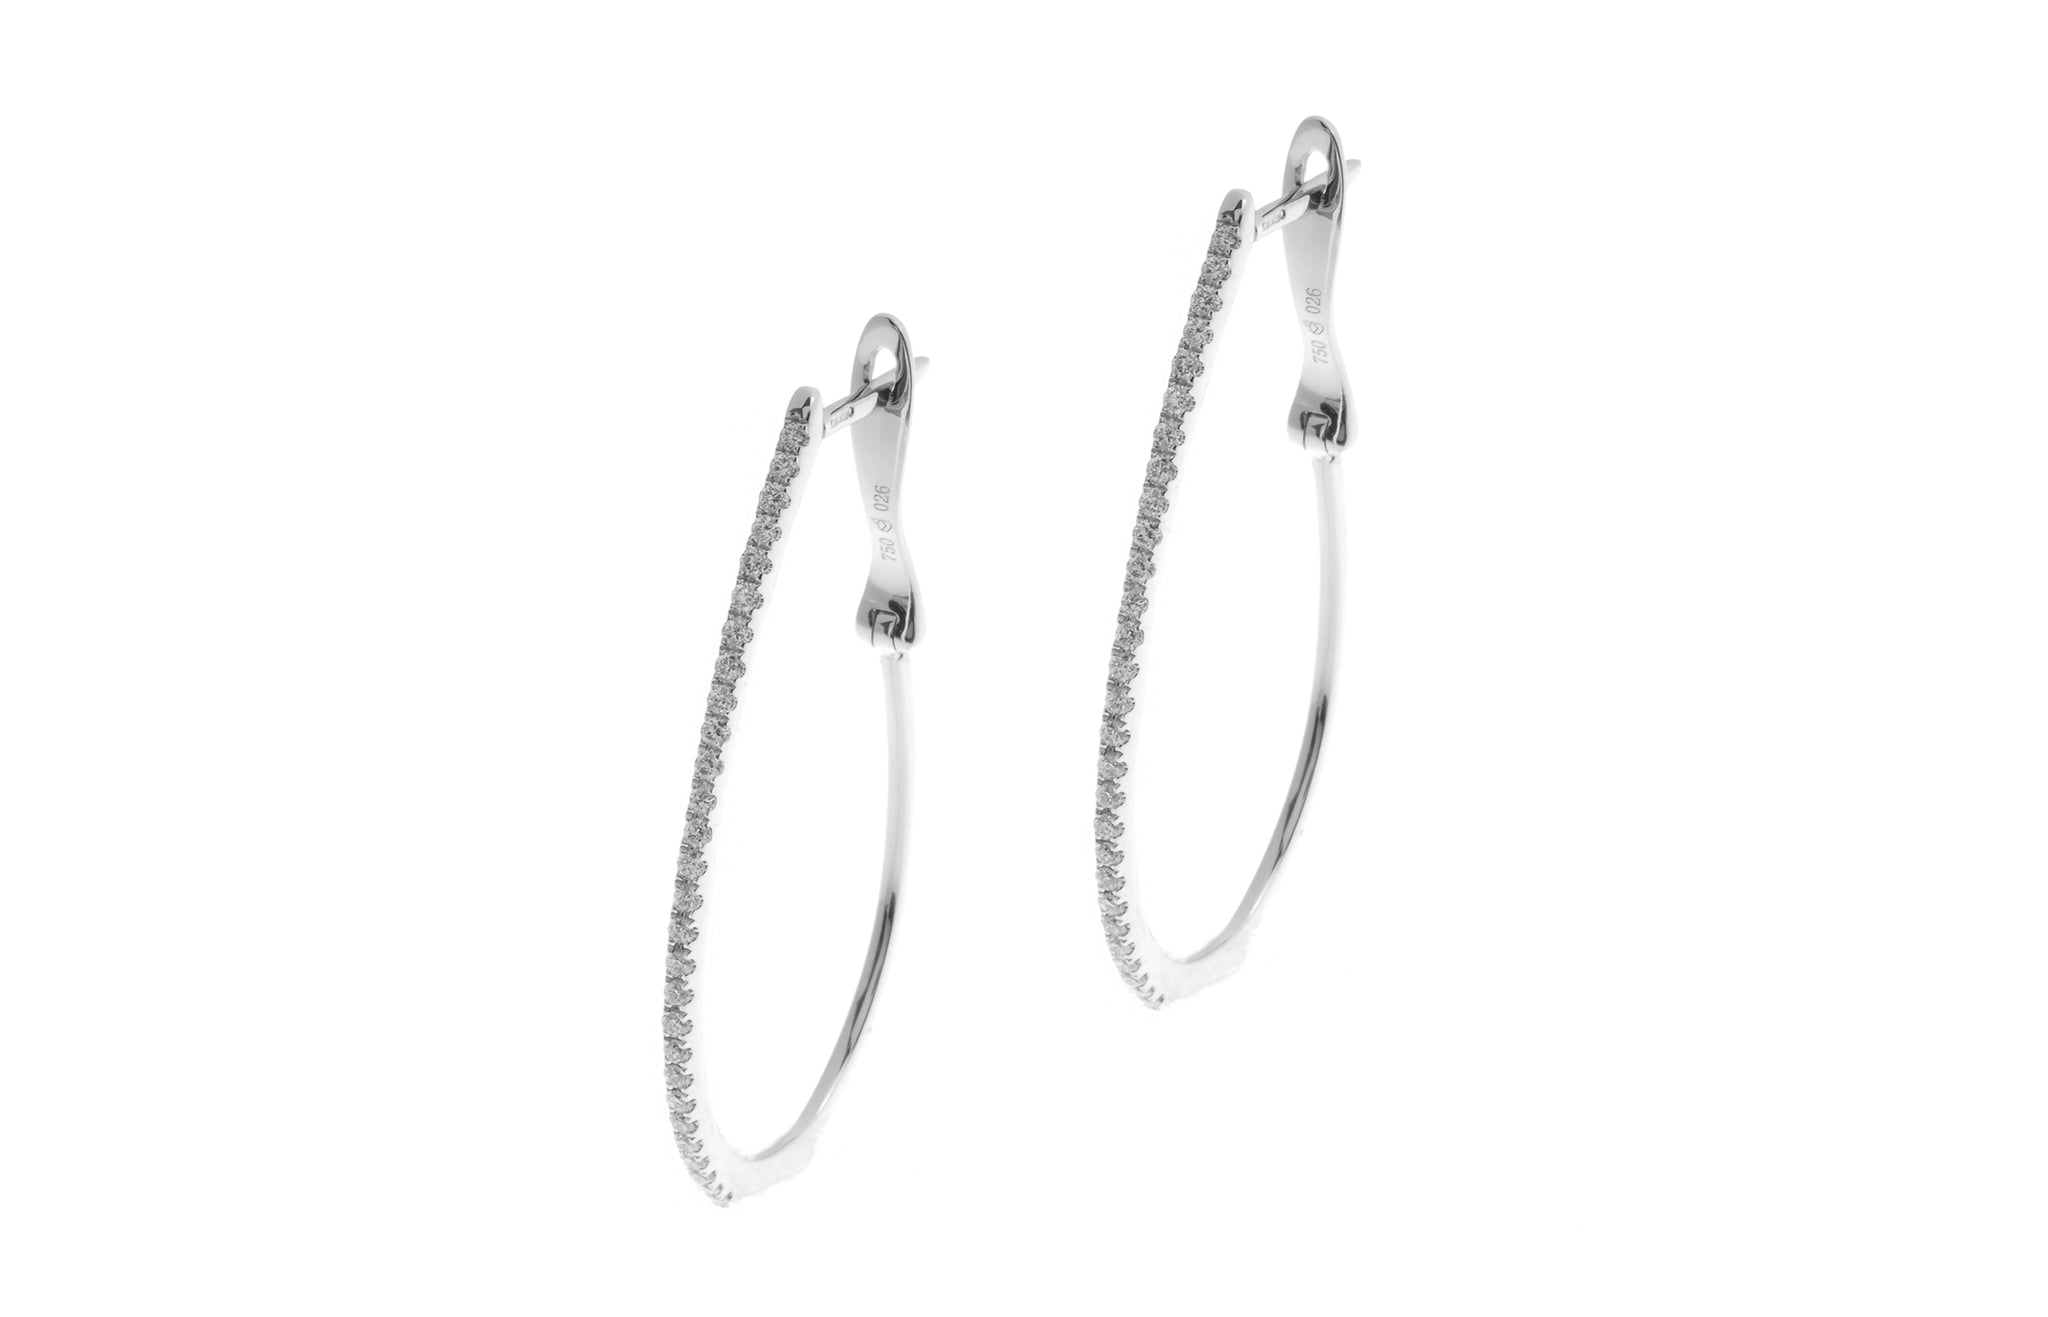 18ct White Gold 0.26ct Diamond Hoop Earrings (E12826C-28)